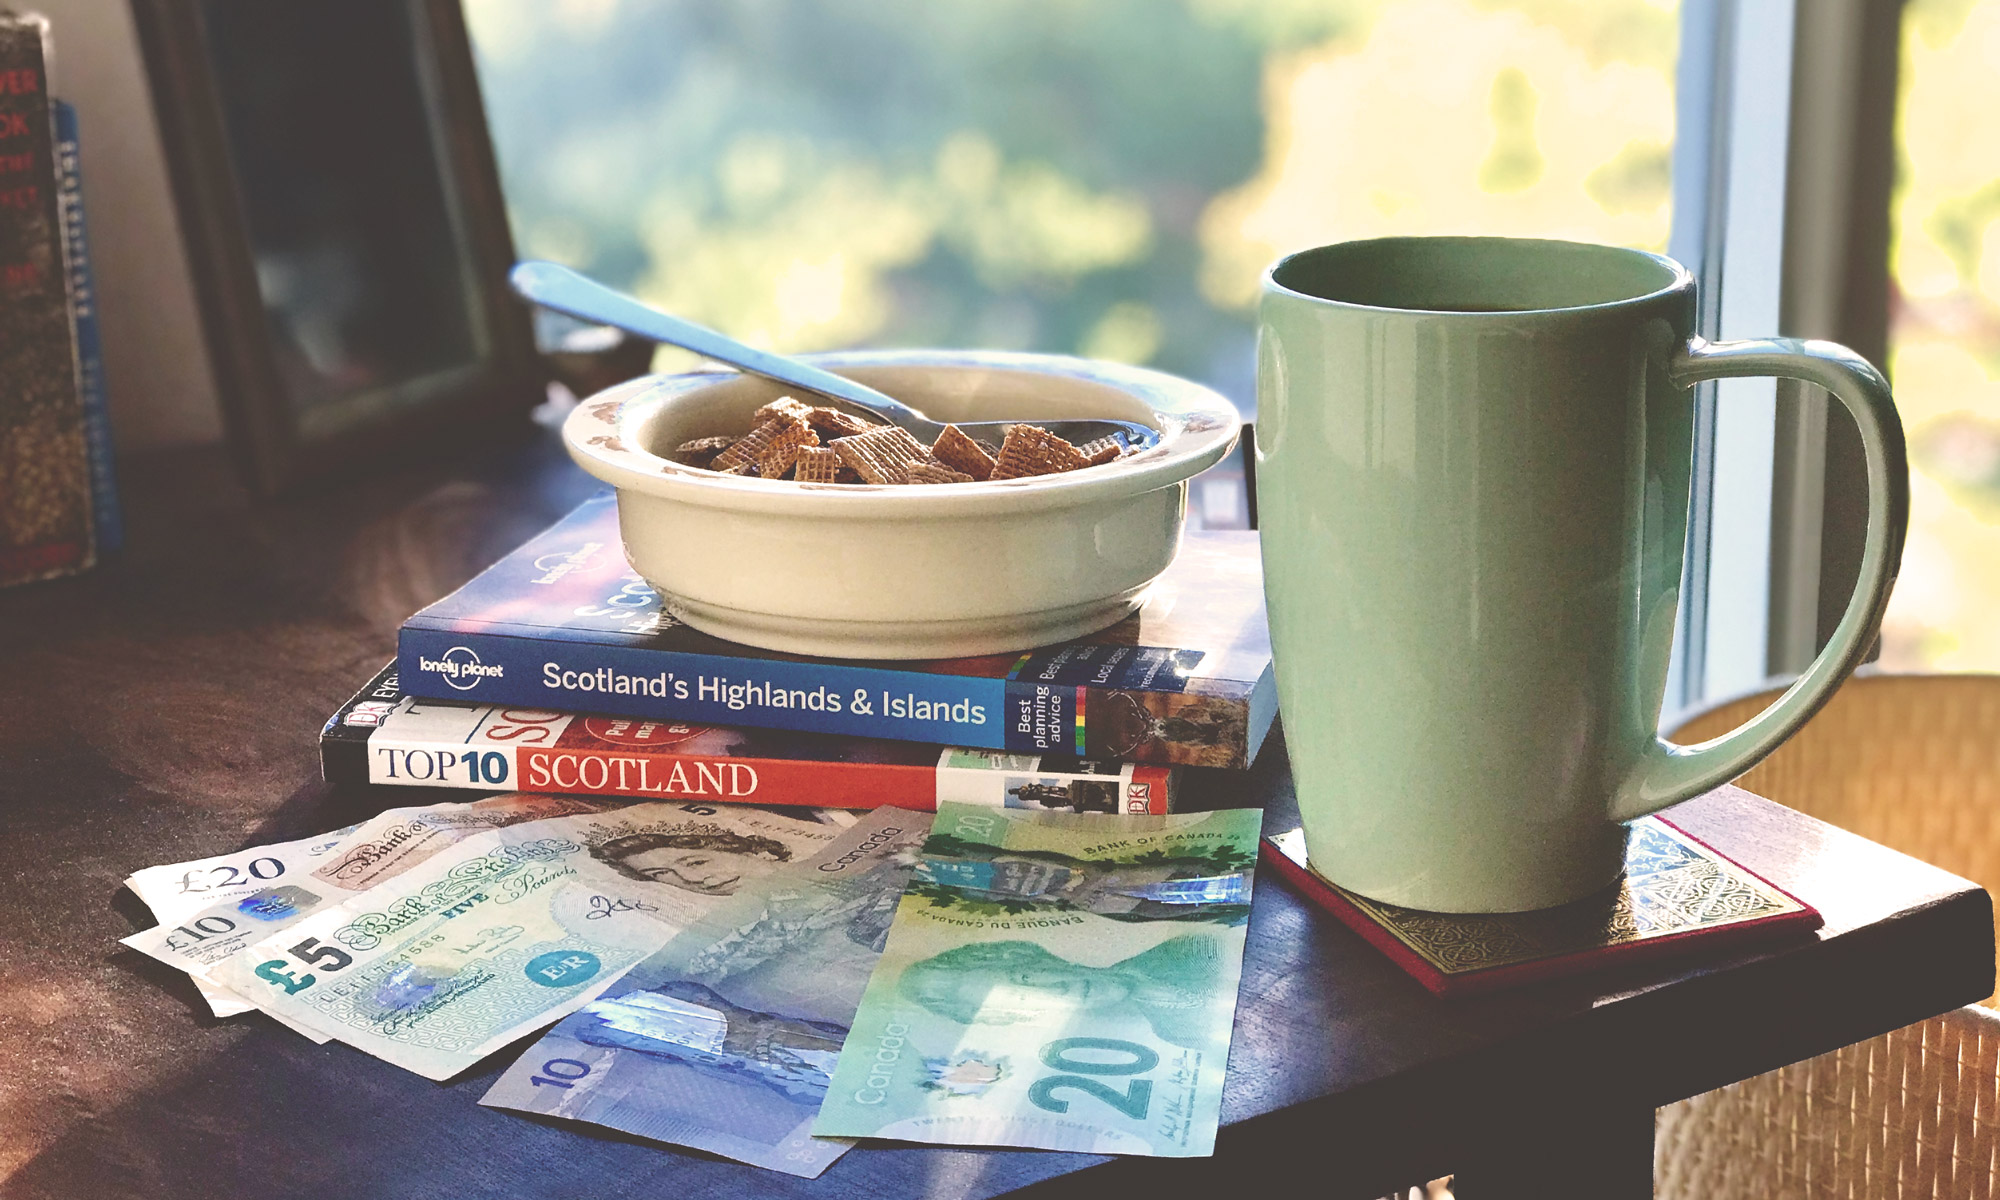 Photo of British and Canadian money next to two travel books on Scotland, a mug and cereal bowl